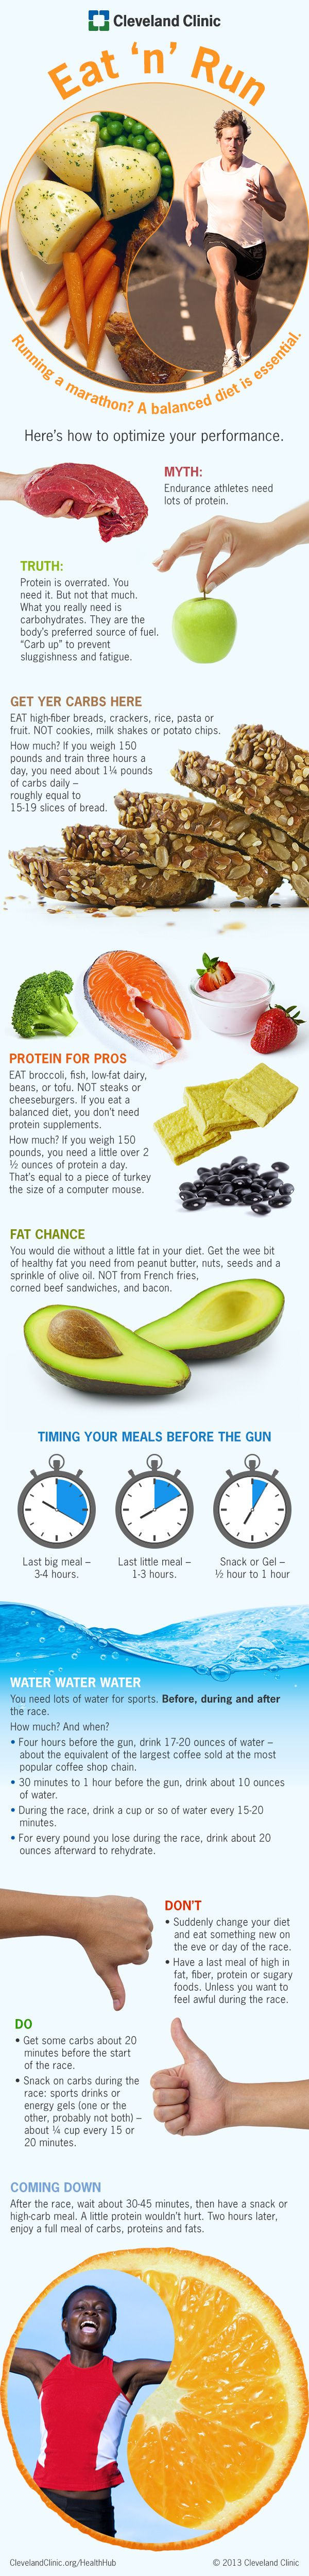 Running a marathon? A balance diet is essential. Infographic from Cleveland Clinic